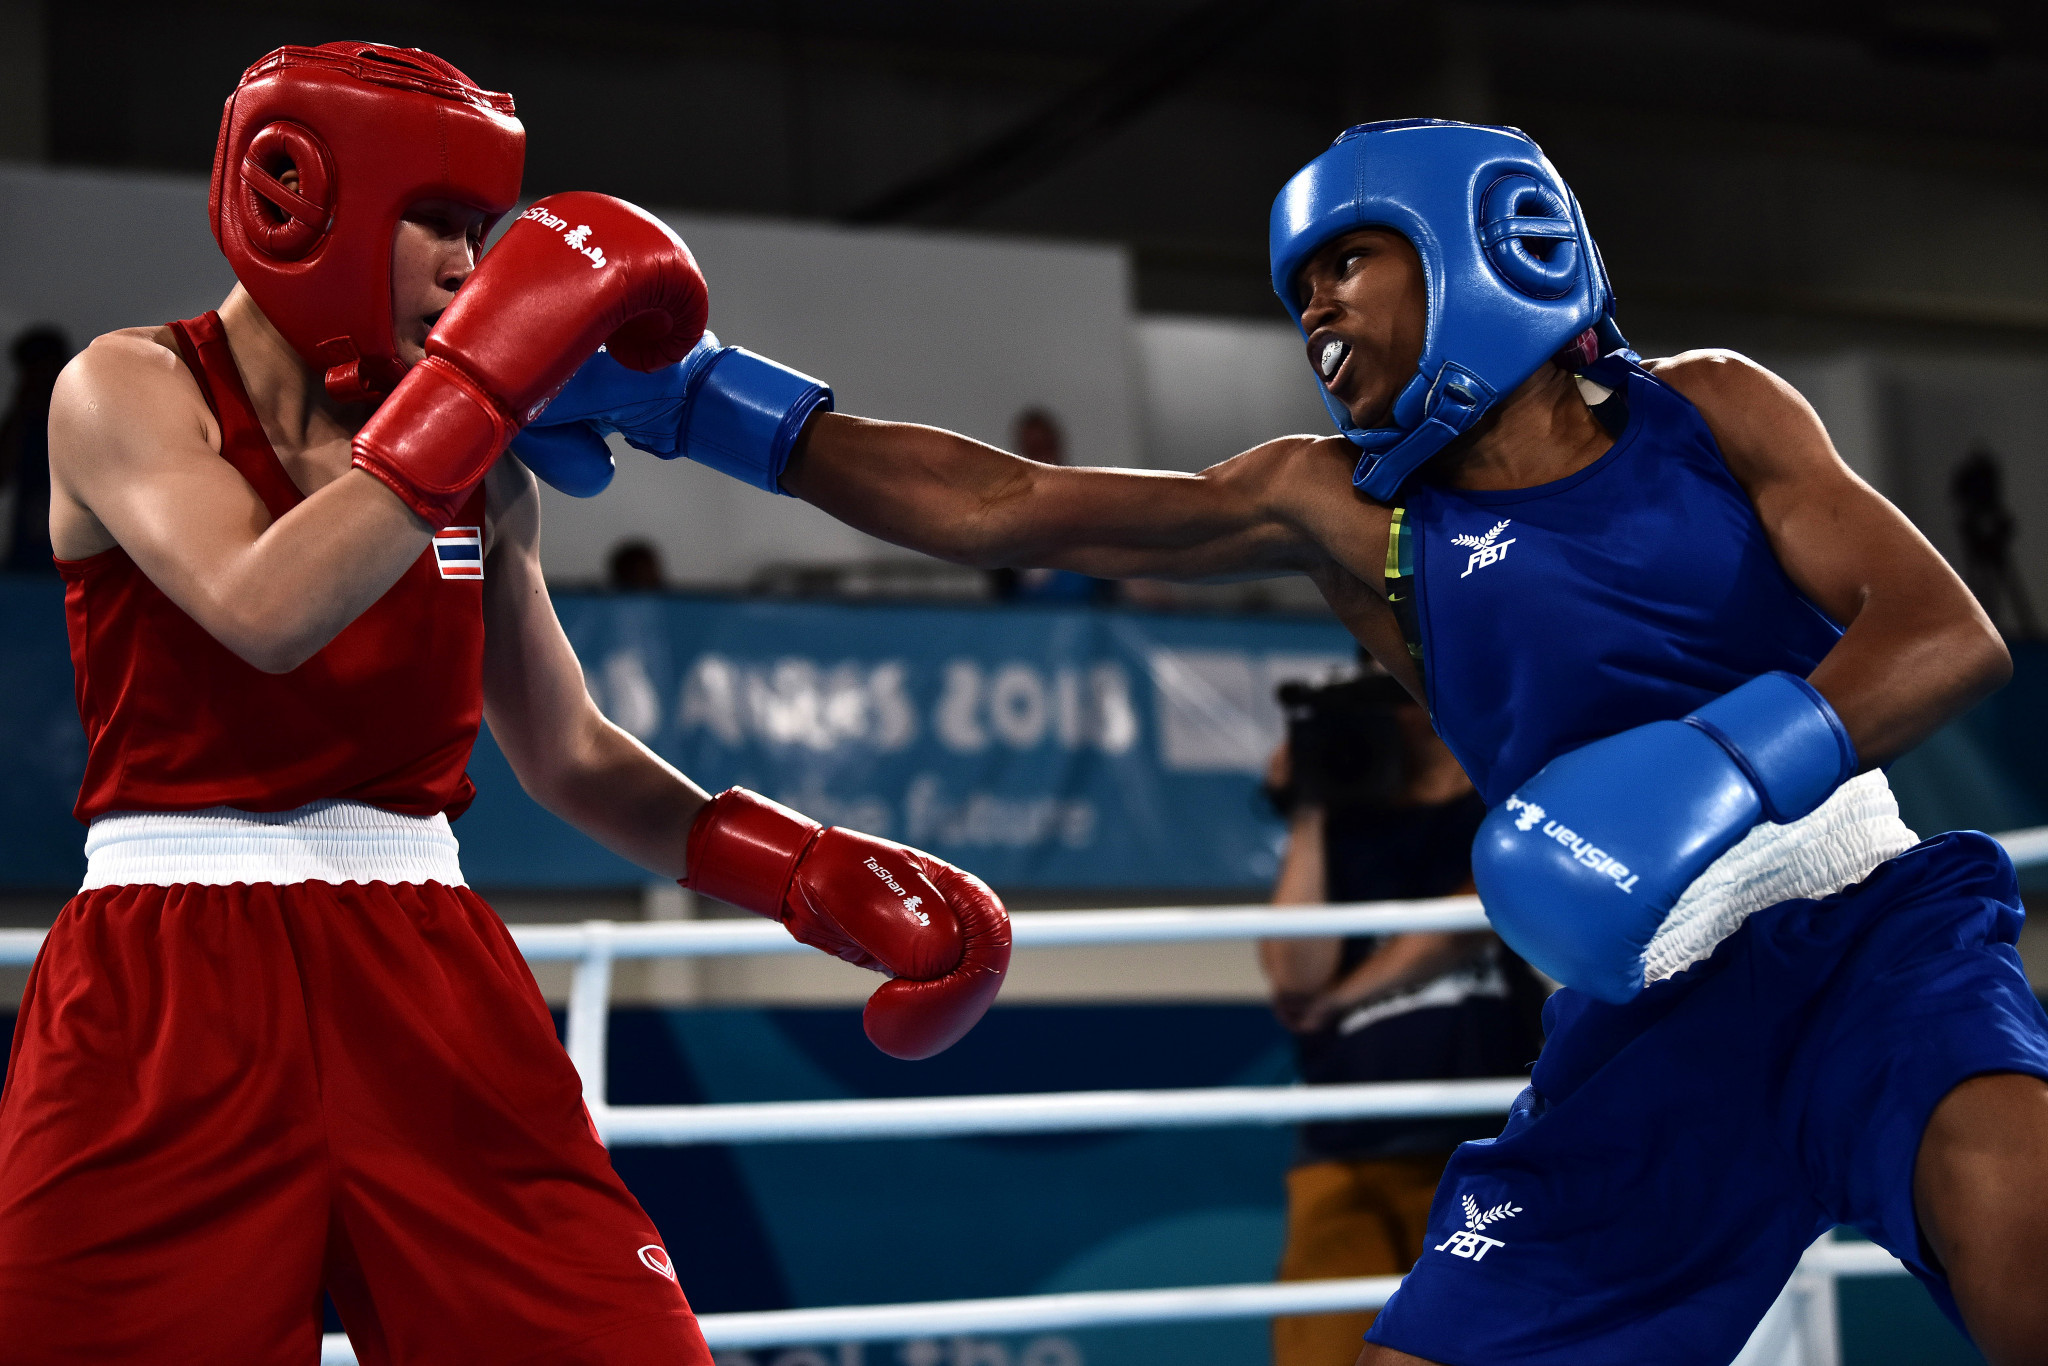 AIBA executive director Tom Virgets recently claimed the delay in confirming the qualification process for Tokyo 2020 was unfair on the athletes ©Getty Images